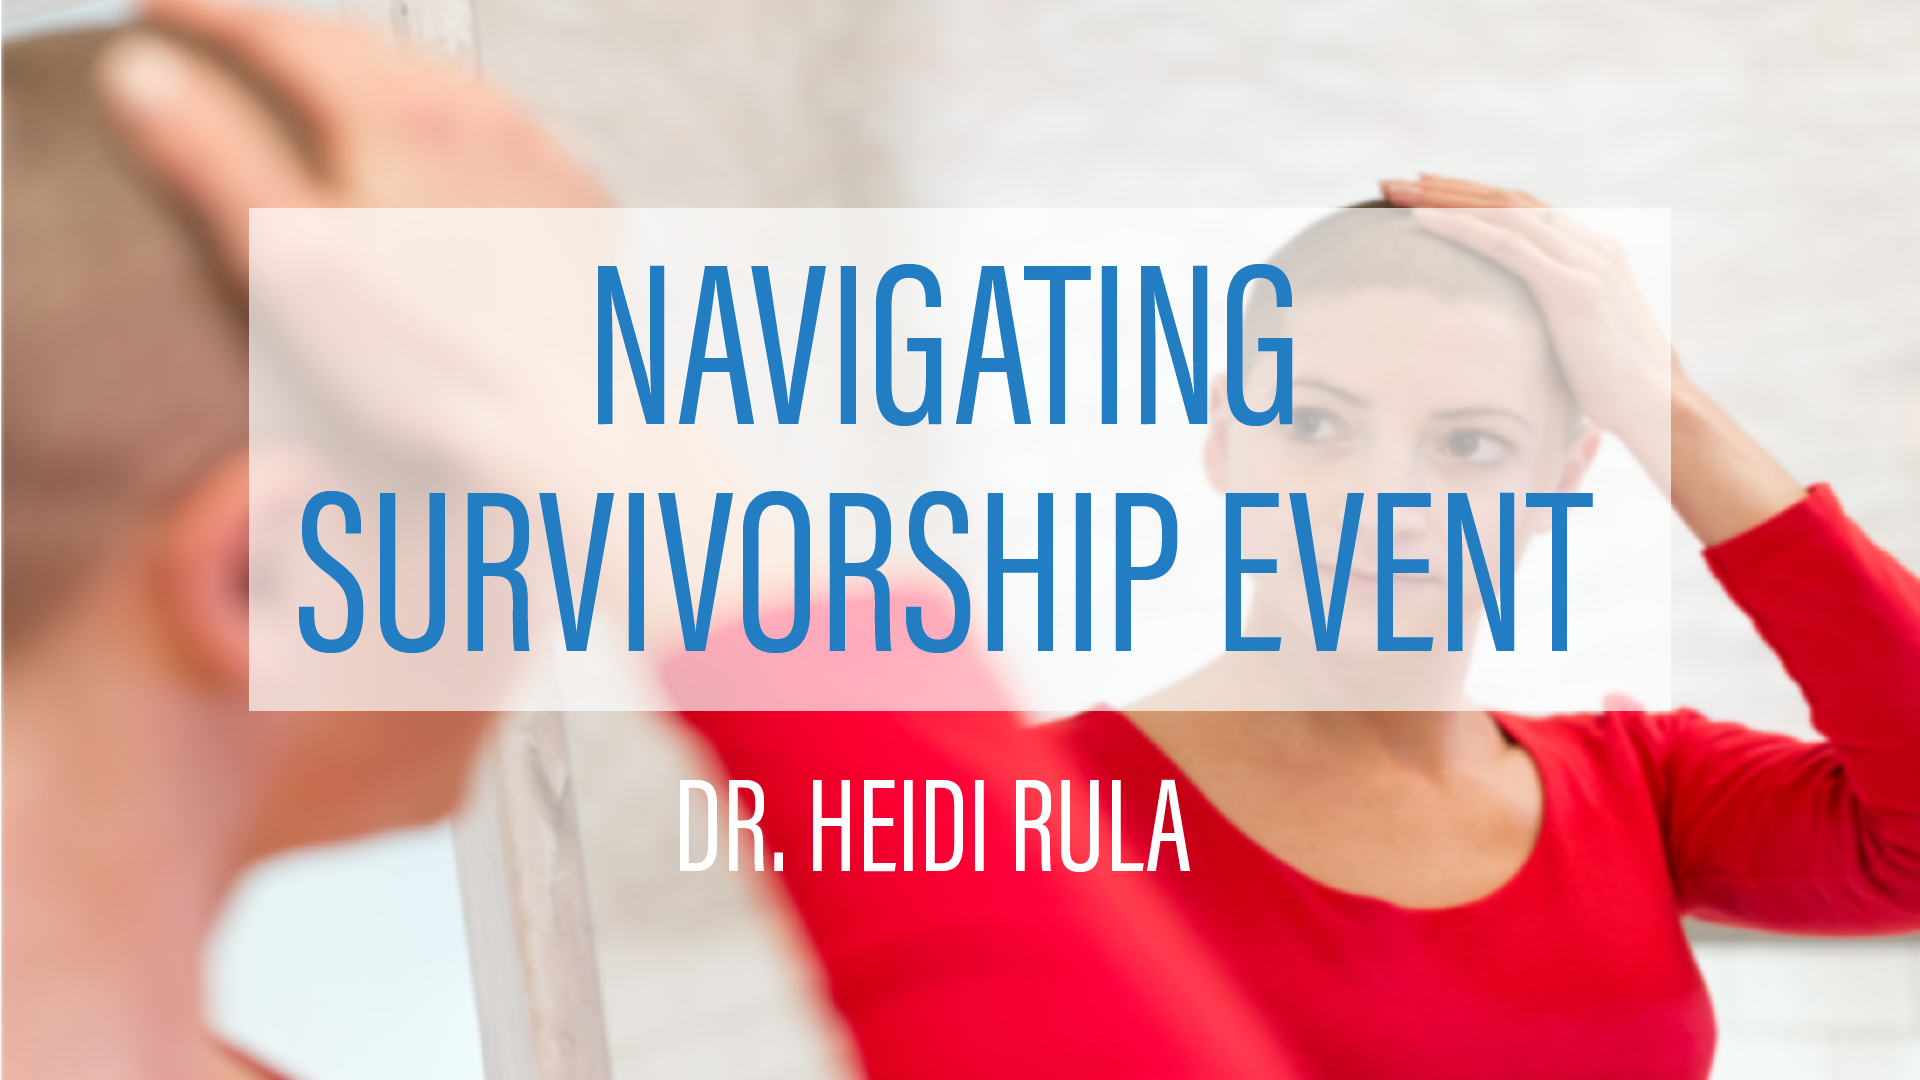 Navigating Survivorship Event